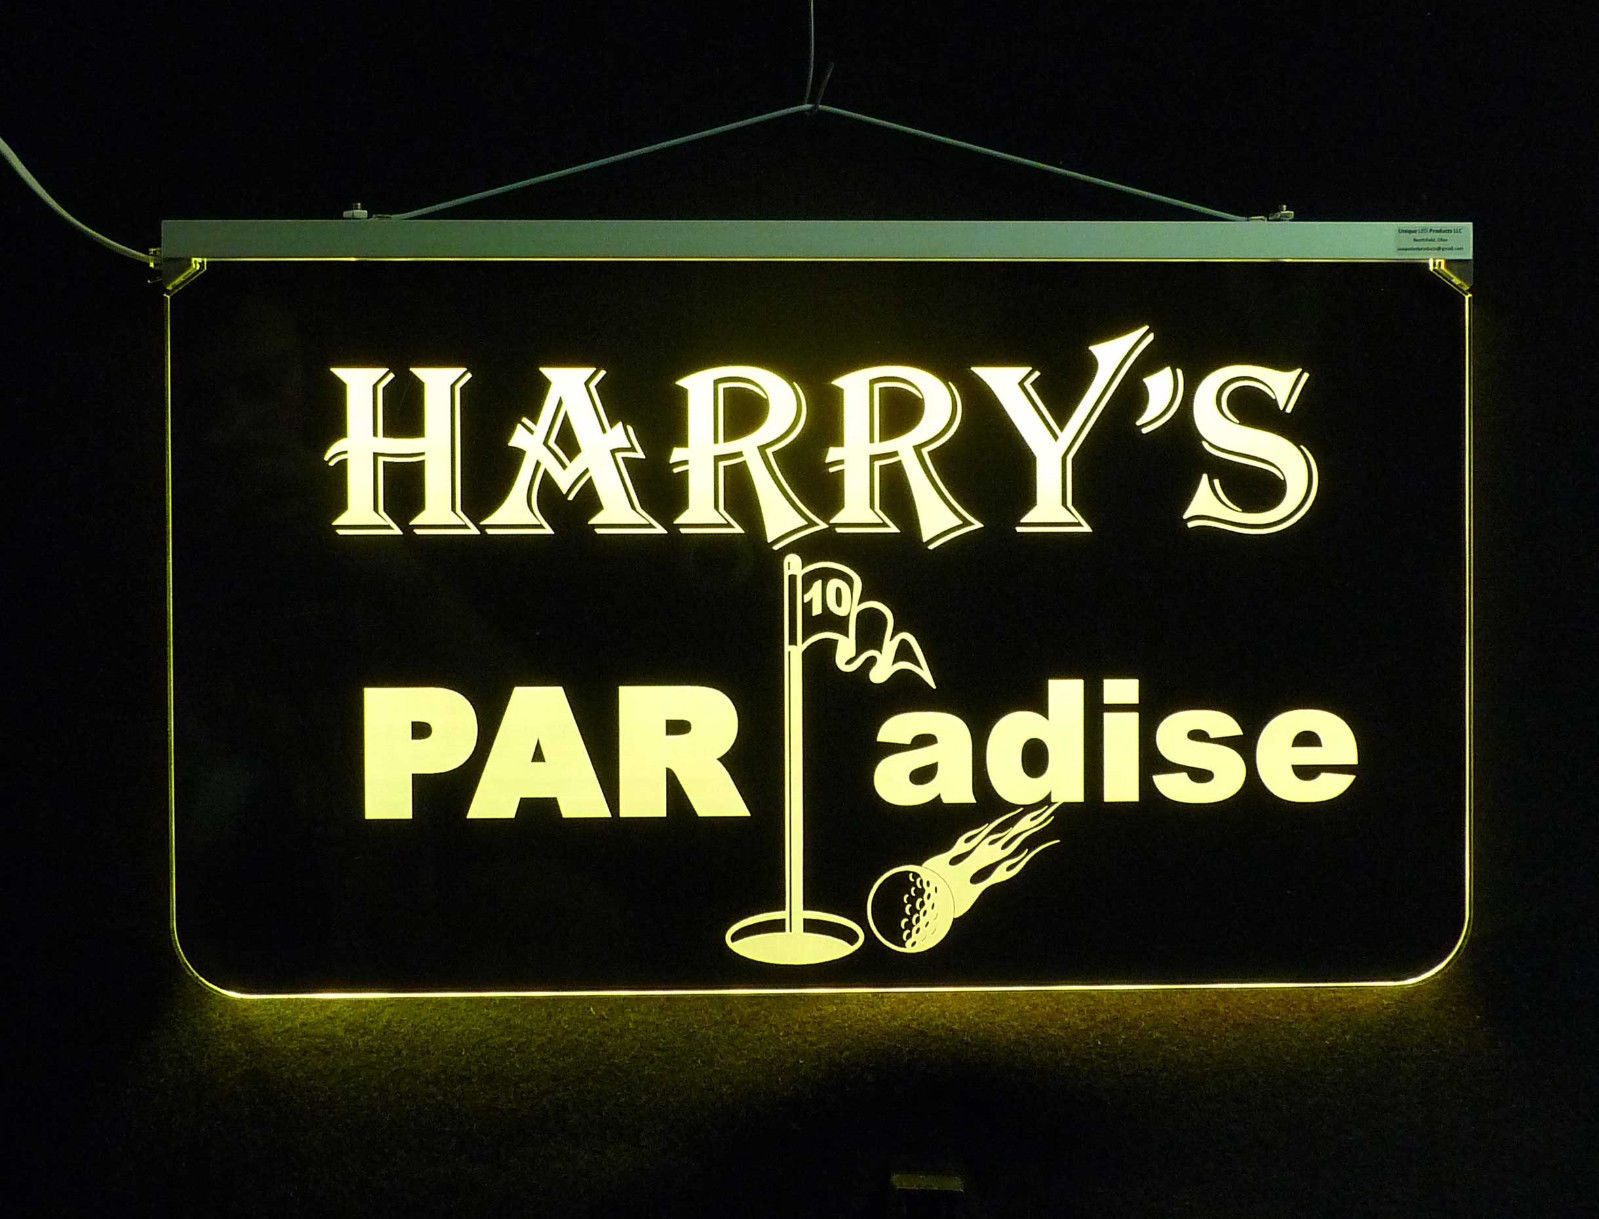 Personalized Golfer LED Man Cave Sign- Garage Sigh, Bar sign, Gift for Dad